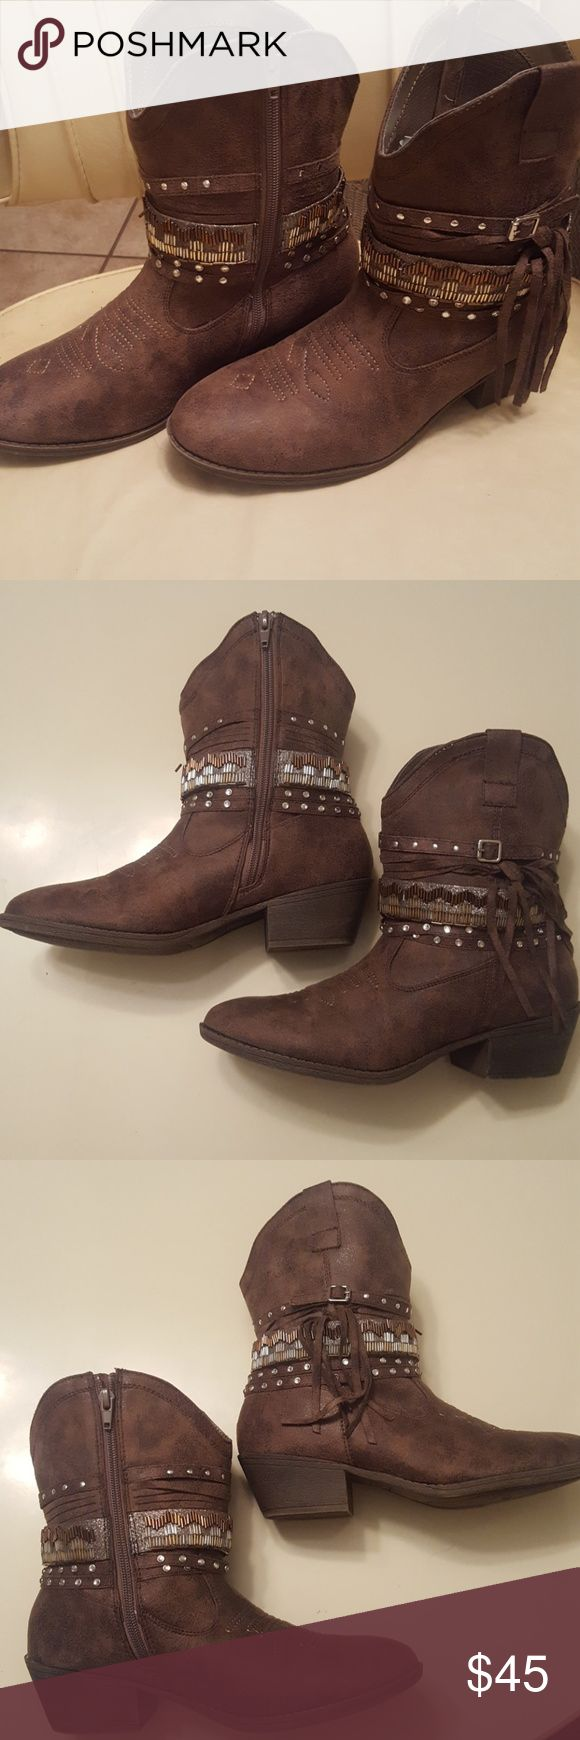 Nwt Brown Rhinestone Buckle Boots Size 9 These are nwt ankle boots, color is a rich brown on the top of foot embroidered. Theyre size 9 in women, bought from Justice for girls because I love their shoes! But I havent worn, have too many pairs. These zip up on the inside of your ankles. They are beautiful, but not too girly at same time. They have rhinestones, silver round studs, gold silver & rose gold tri-beated have strap that wraps around ankle three straps around these with rhinestones…